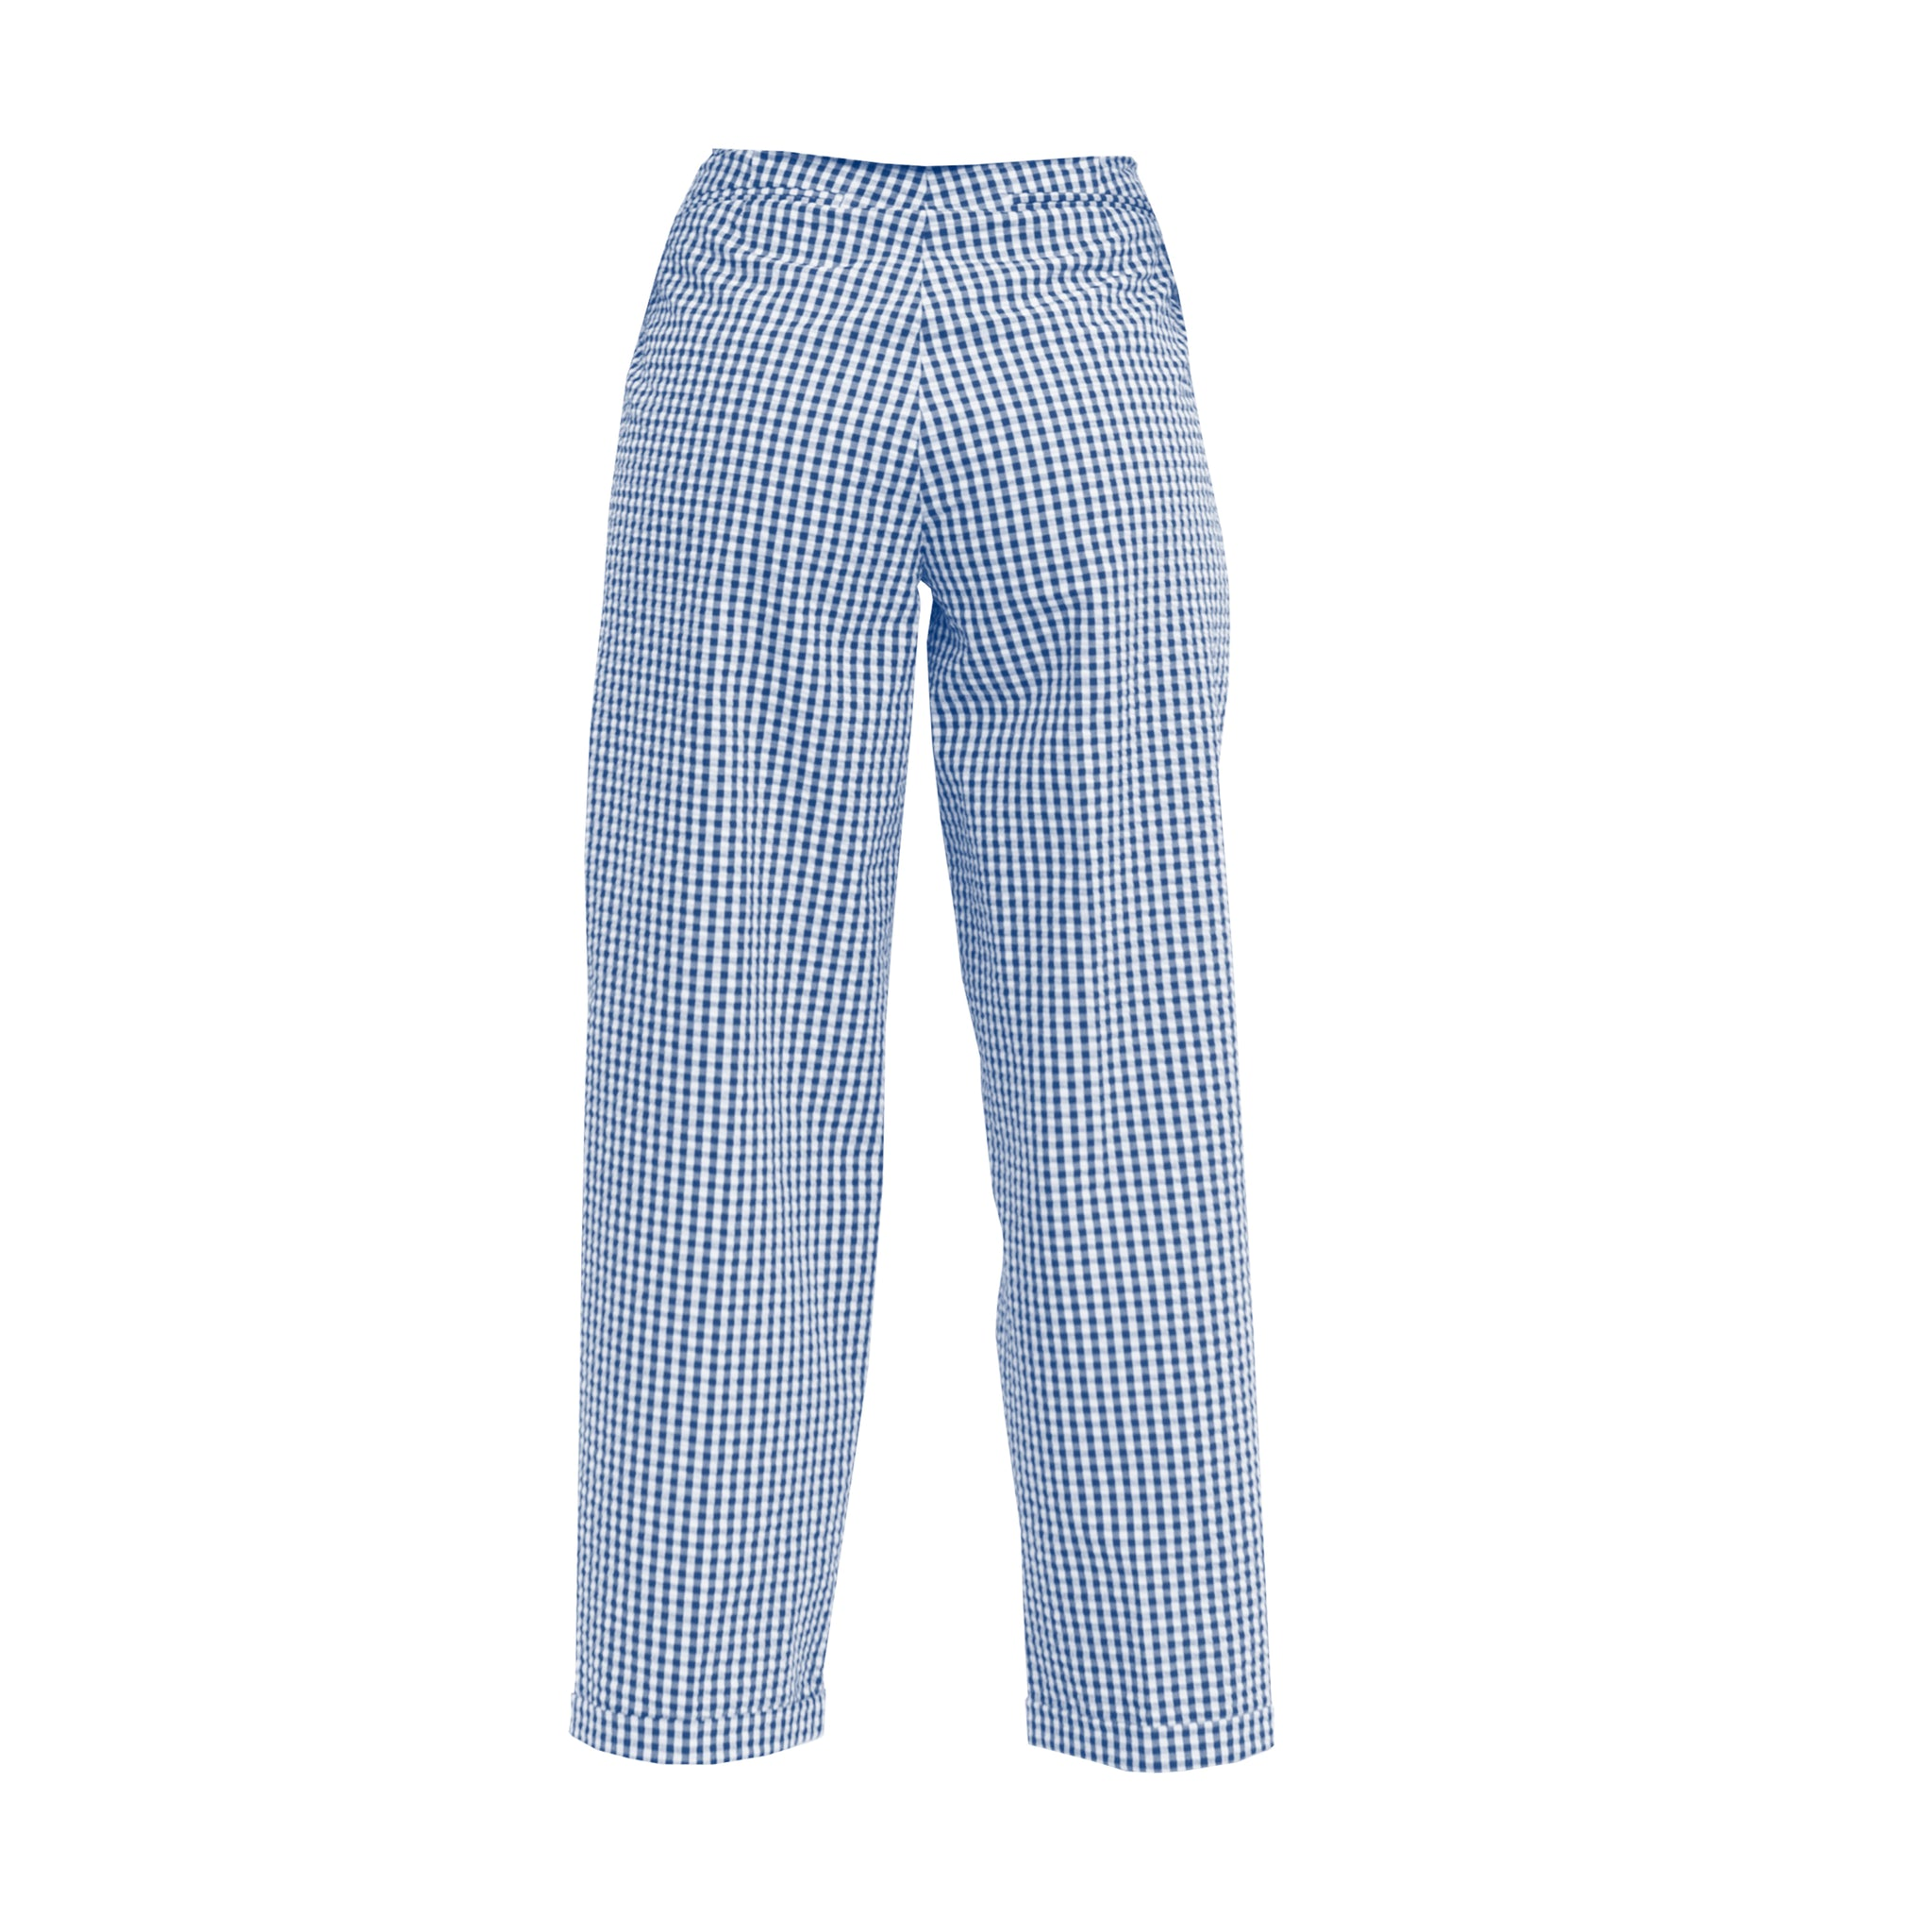 TOALMAS Blue & White Multi Pleat Trousers